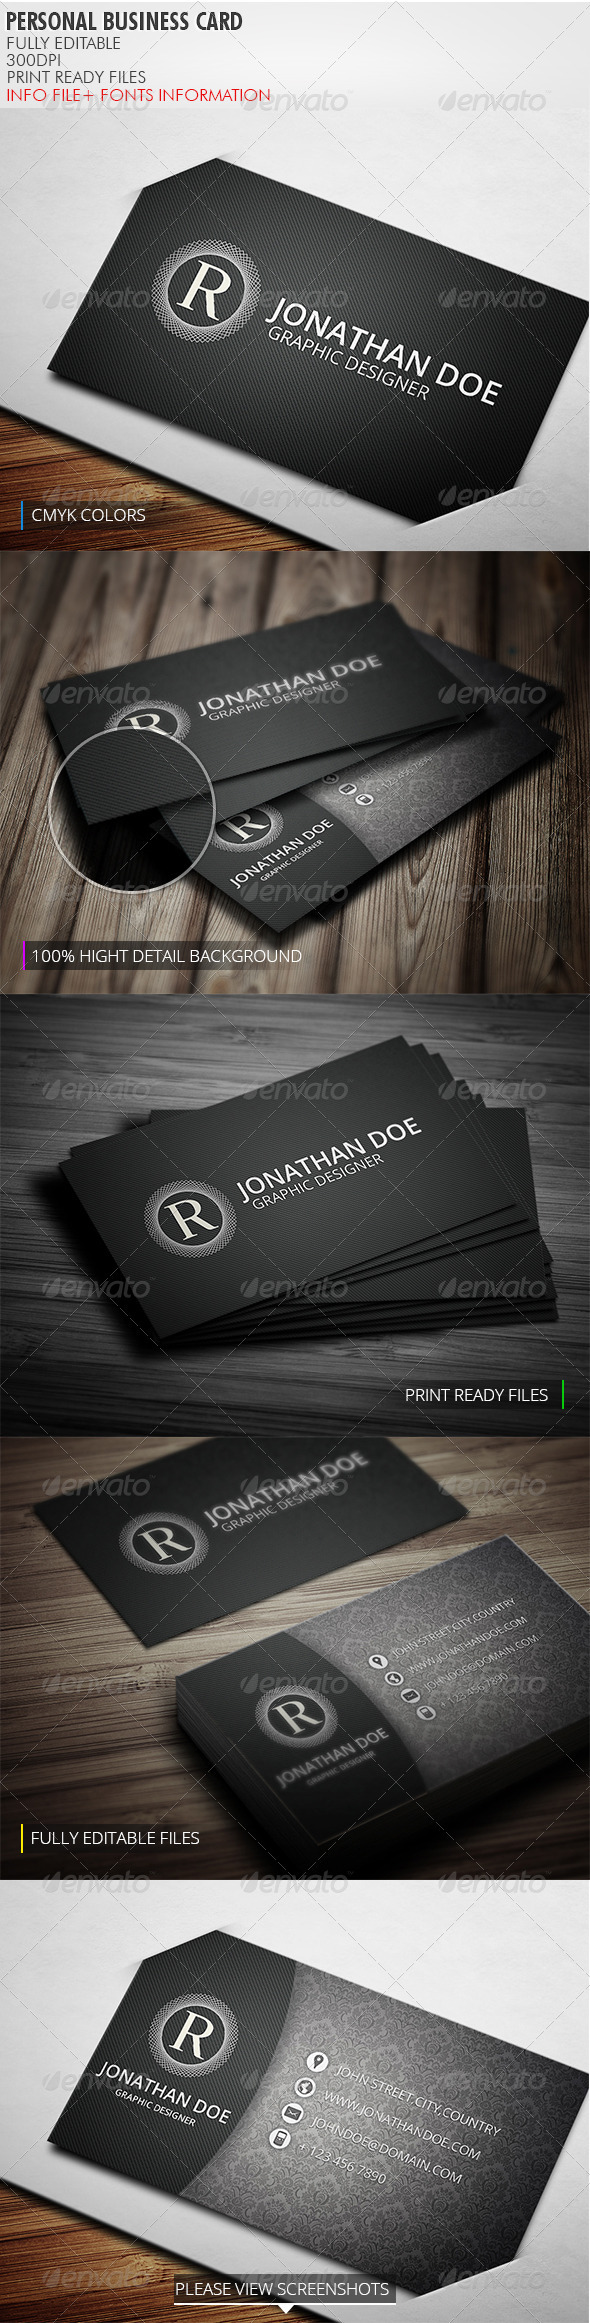 GraphicRiver Personal Business Card 3832929